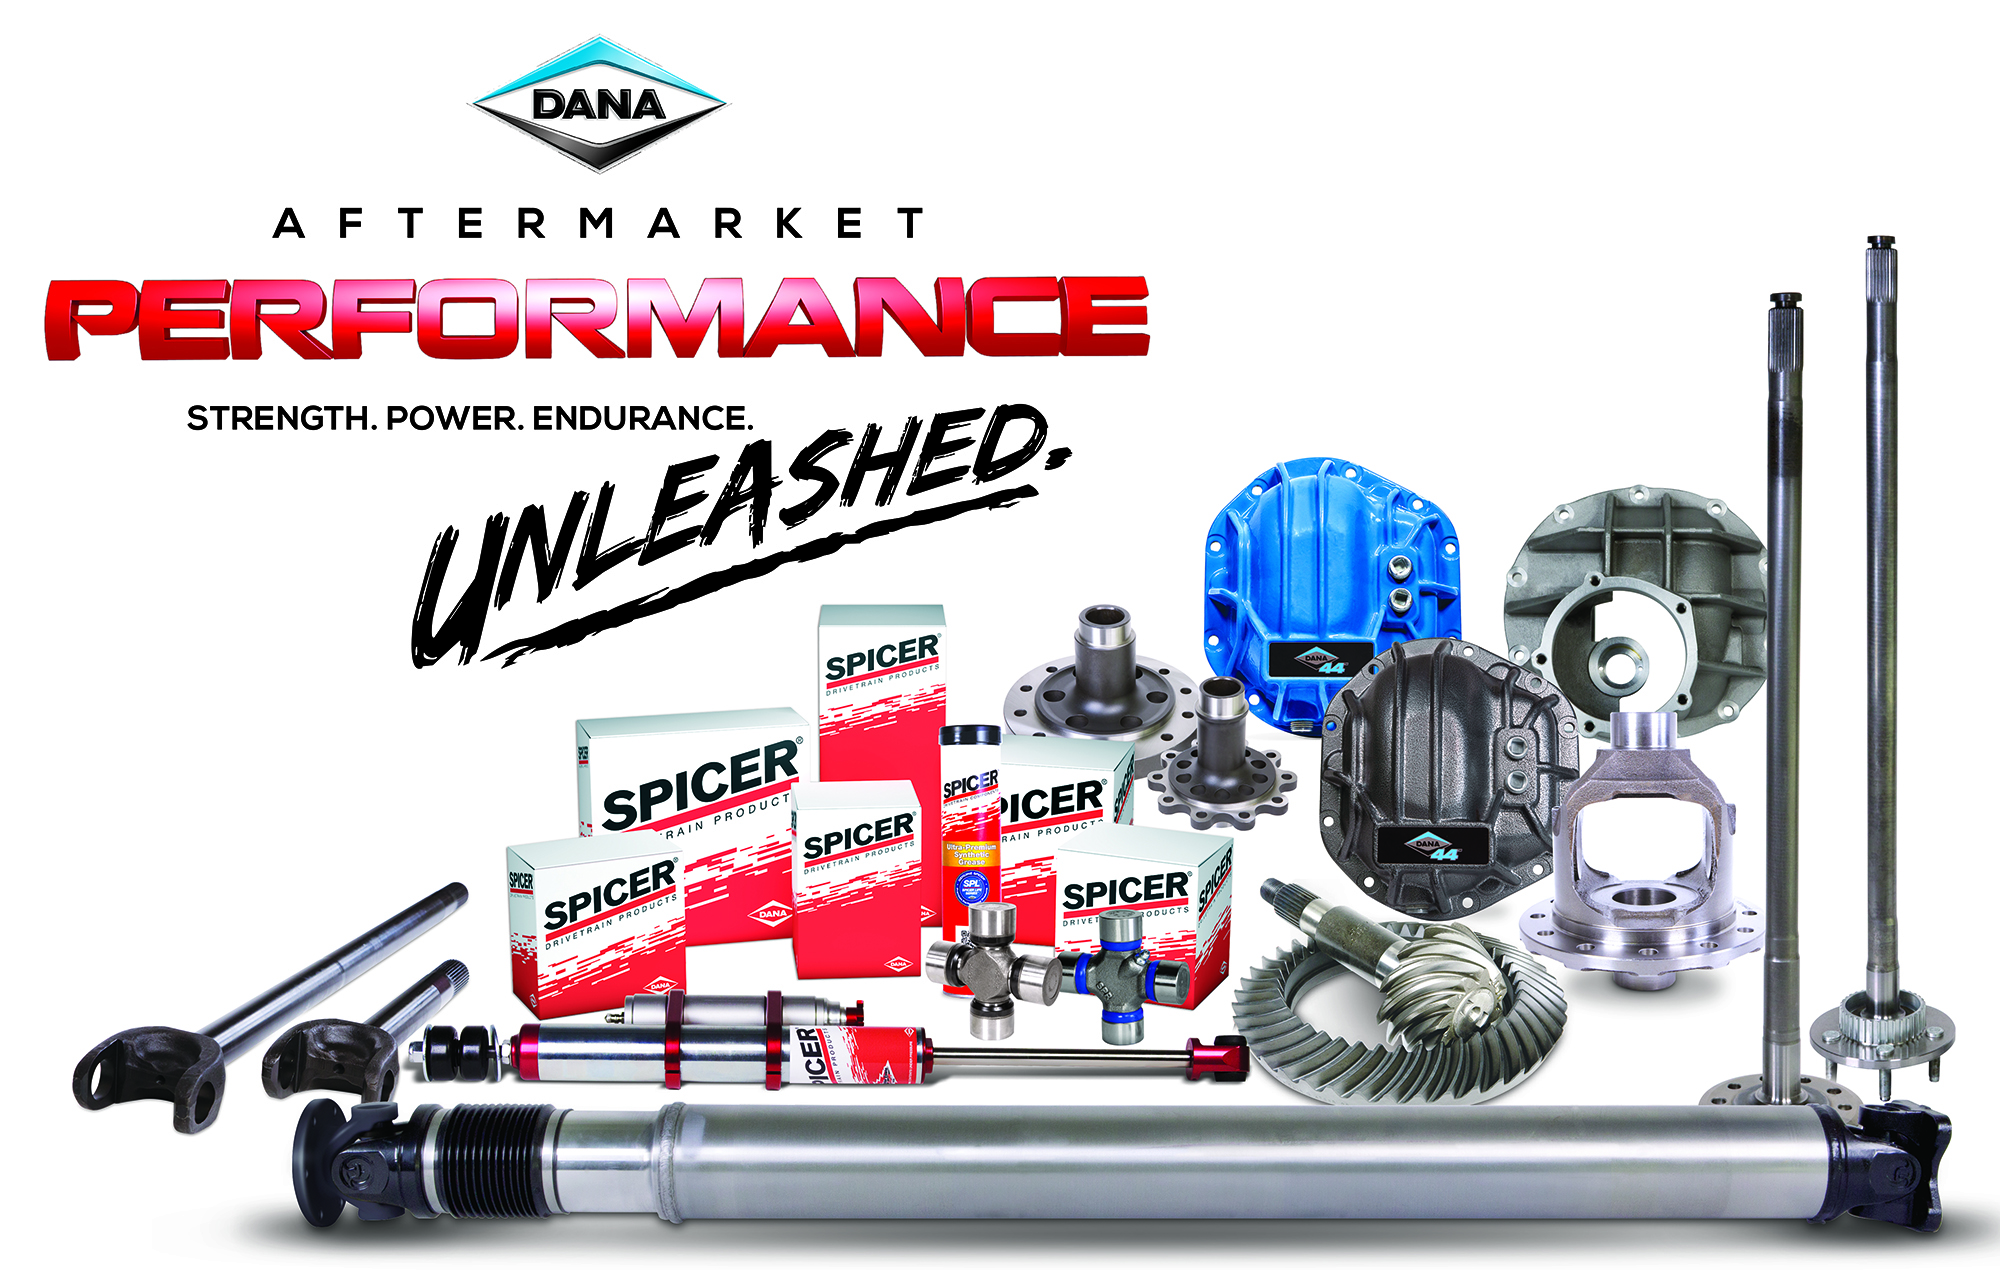 Spicer Parts for High-Performance Applications | Spicer Parts